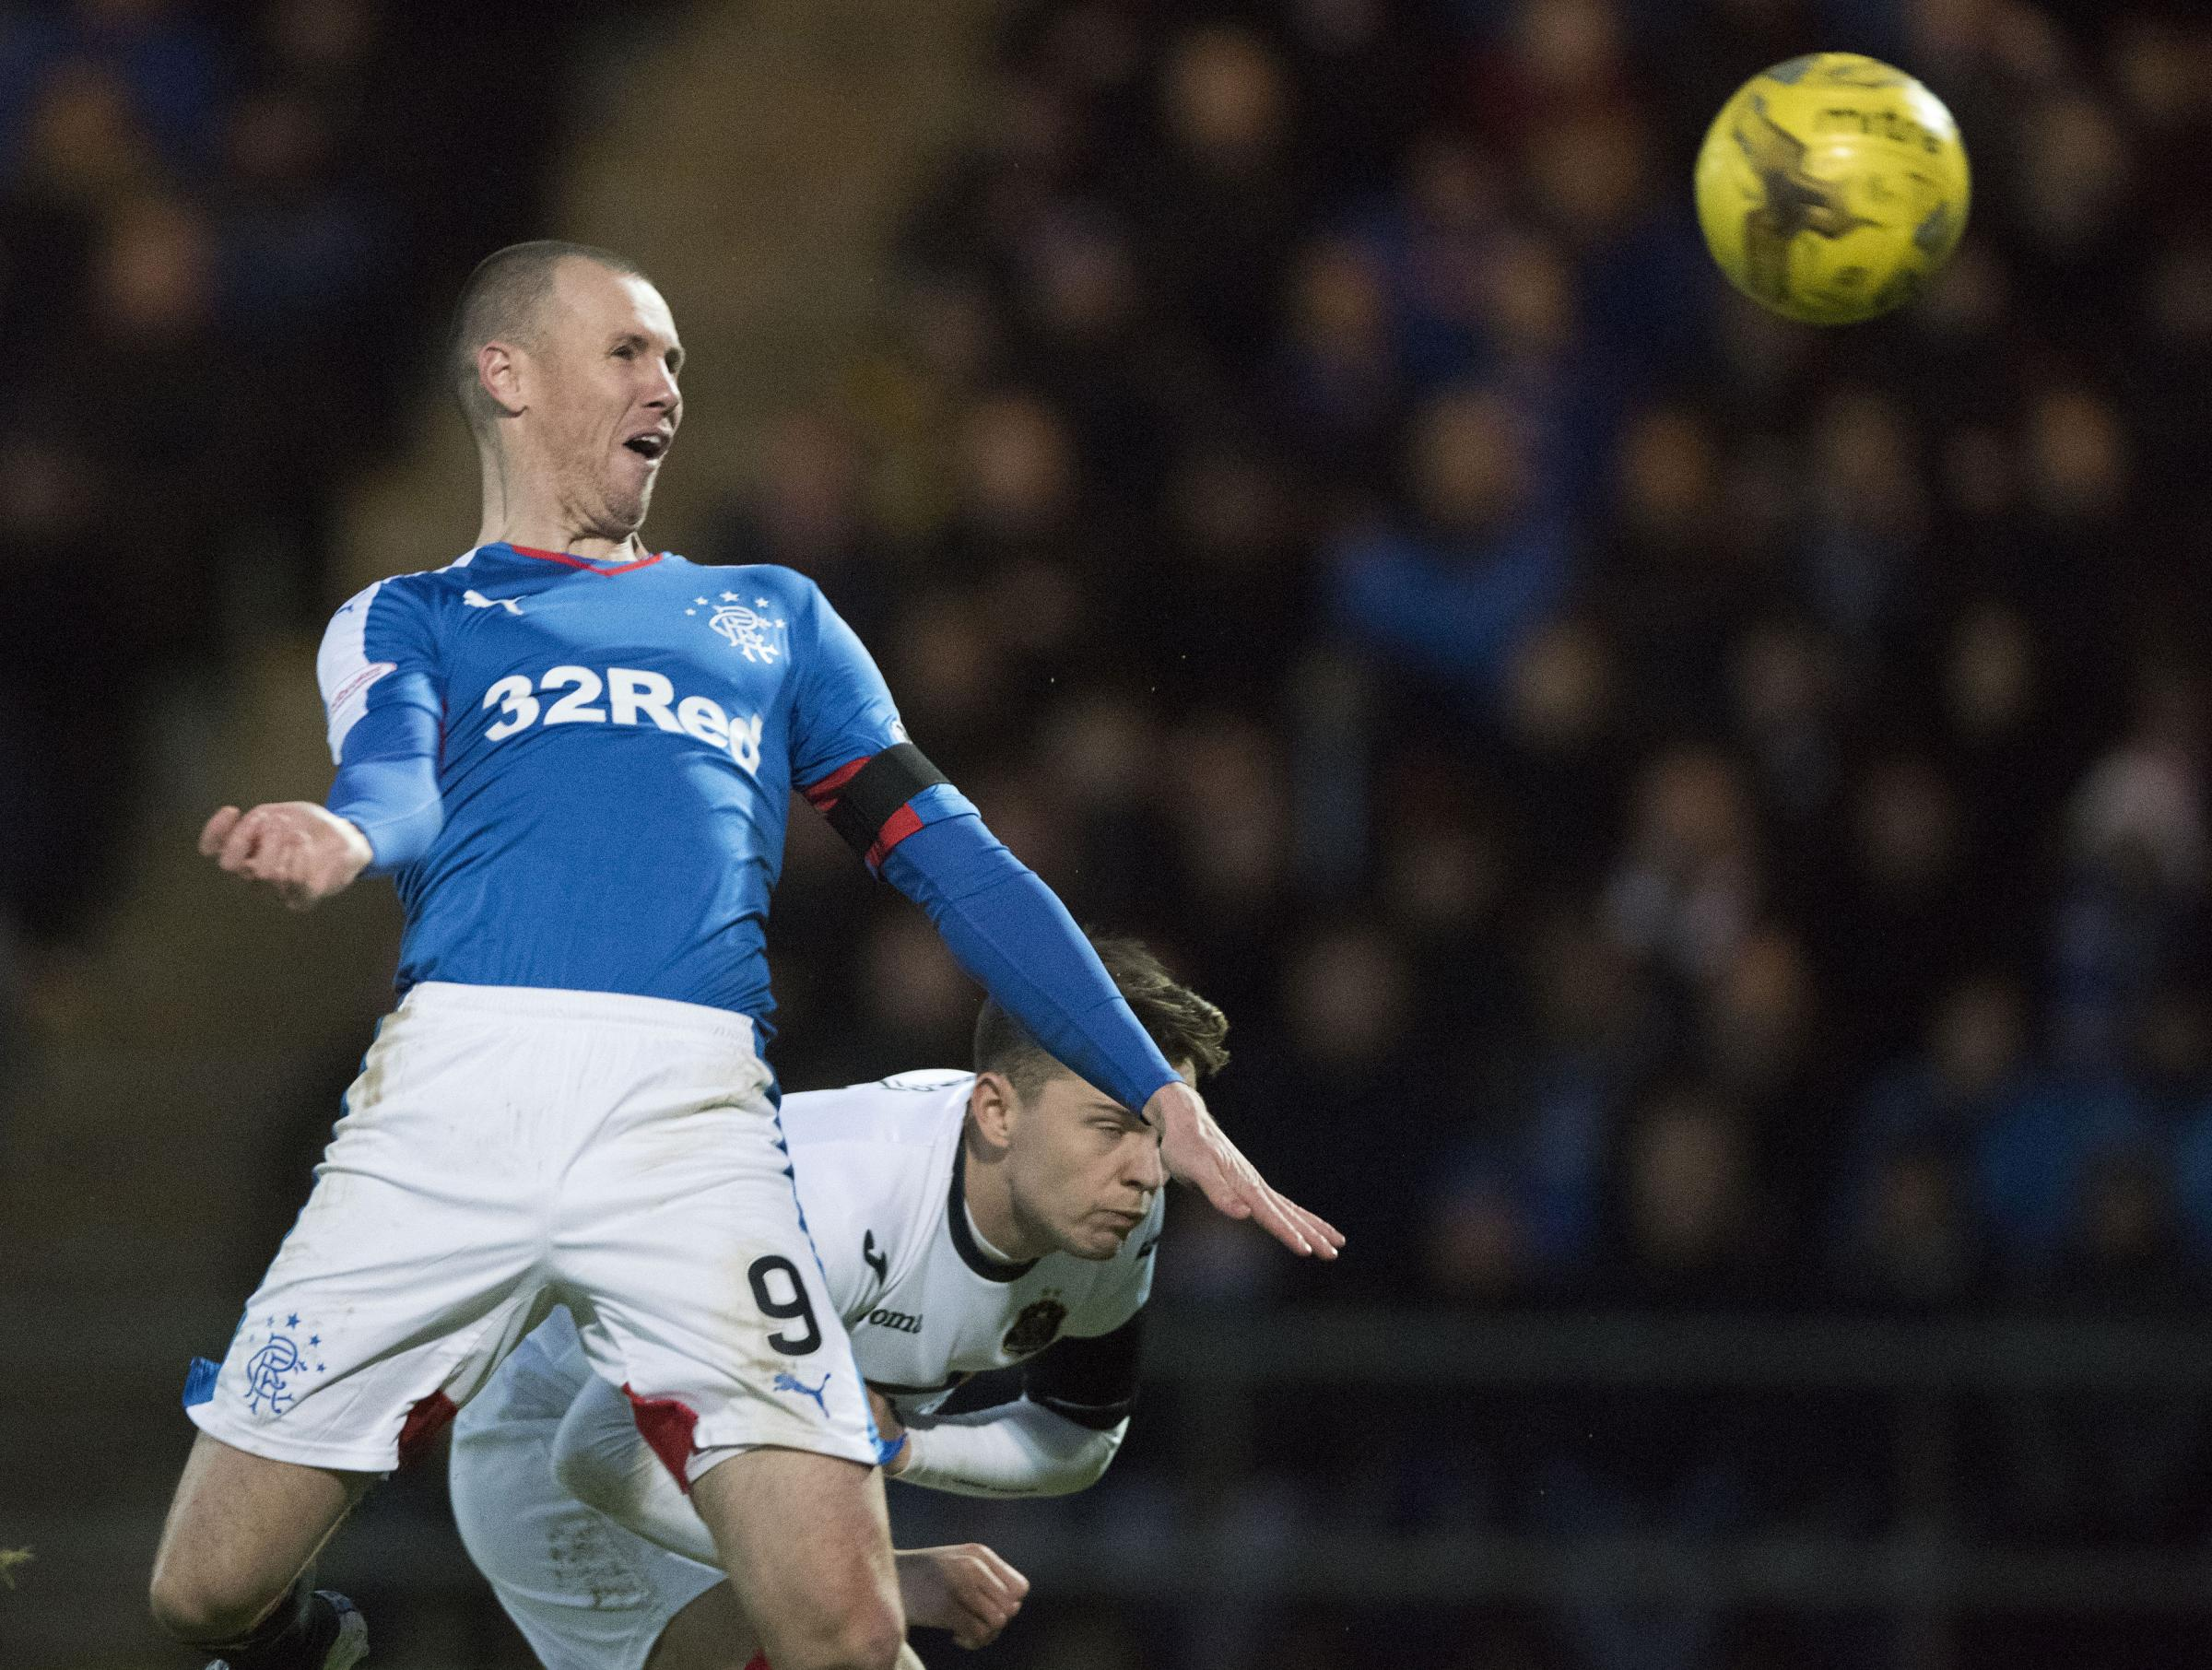 Kenny Miller heads in his second goal for Rangers